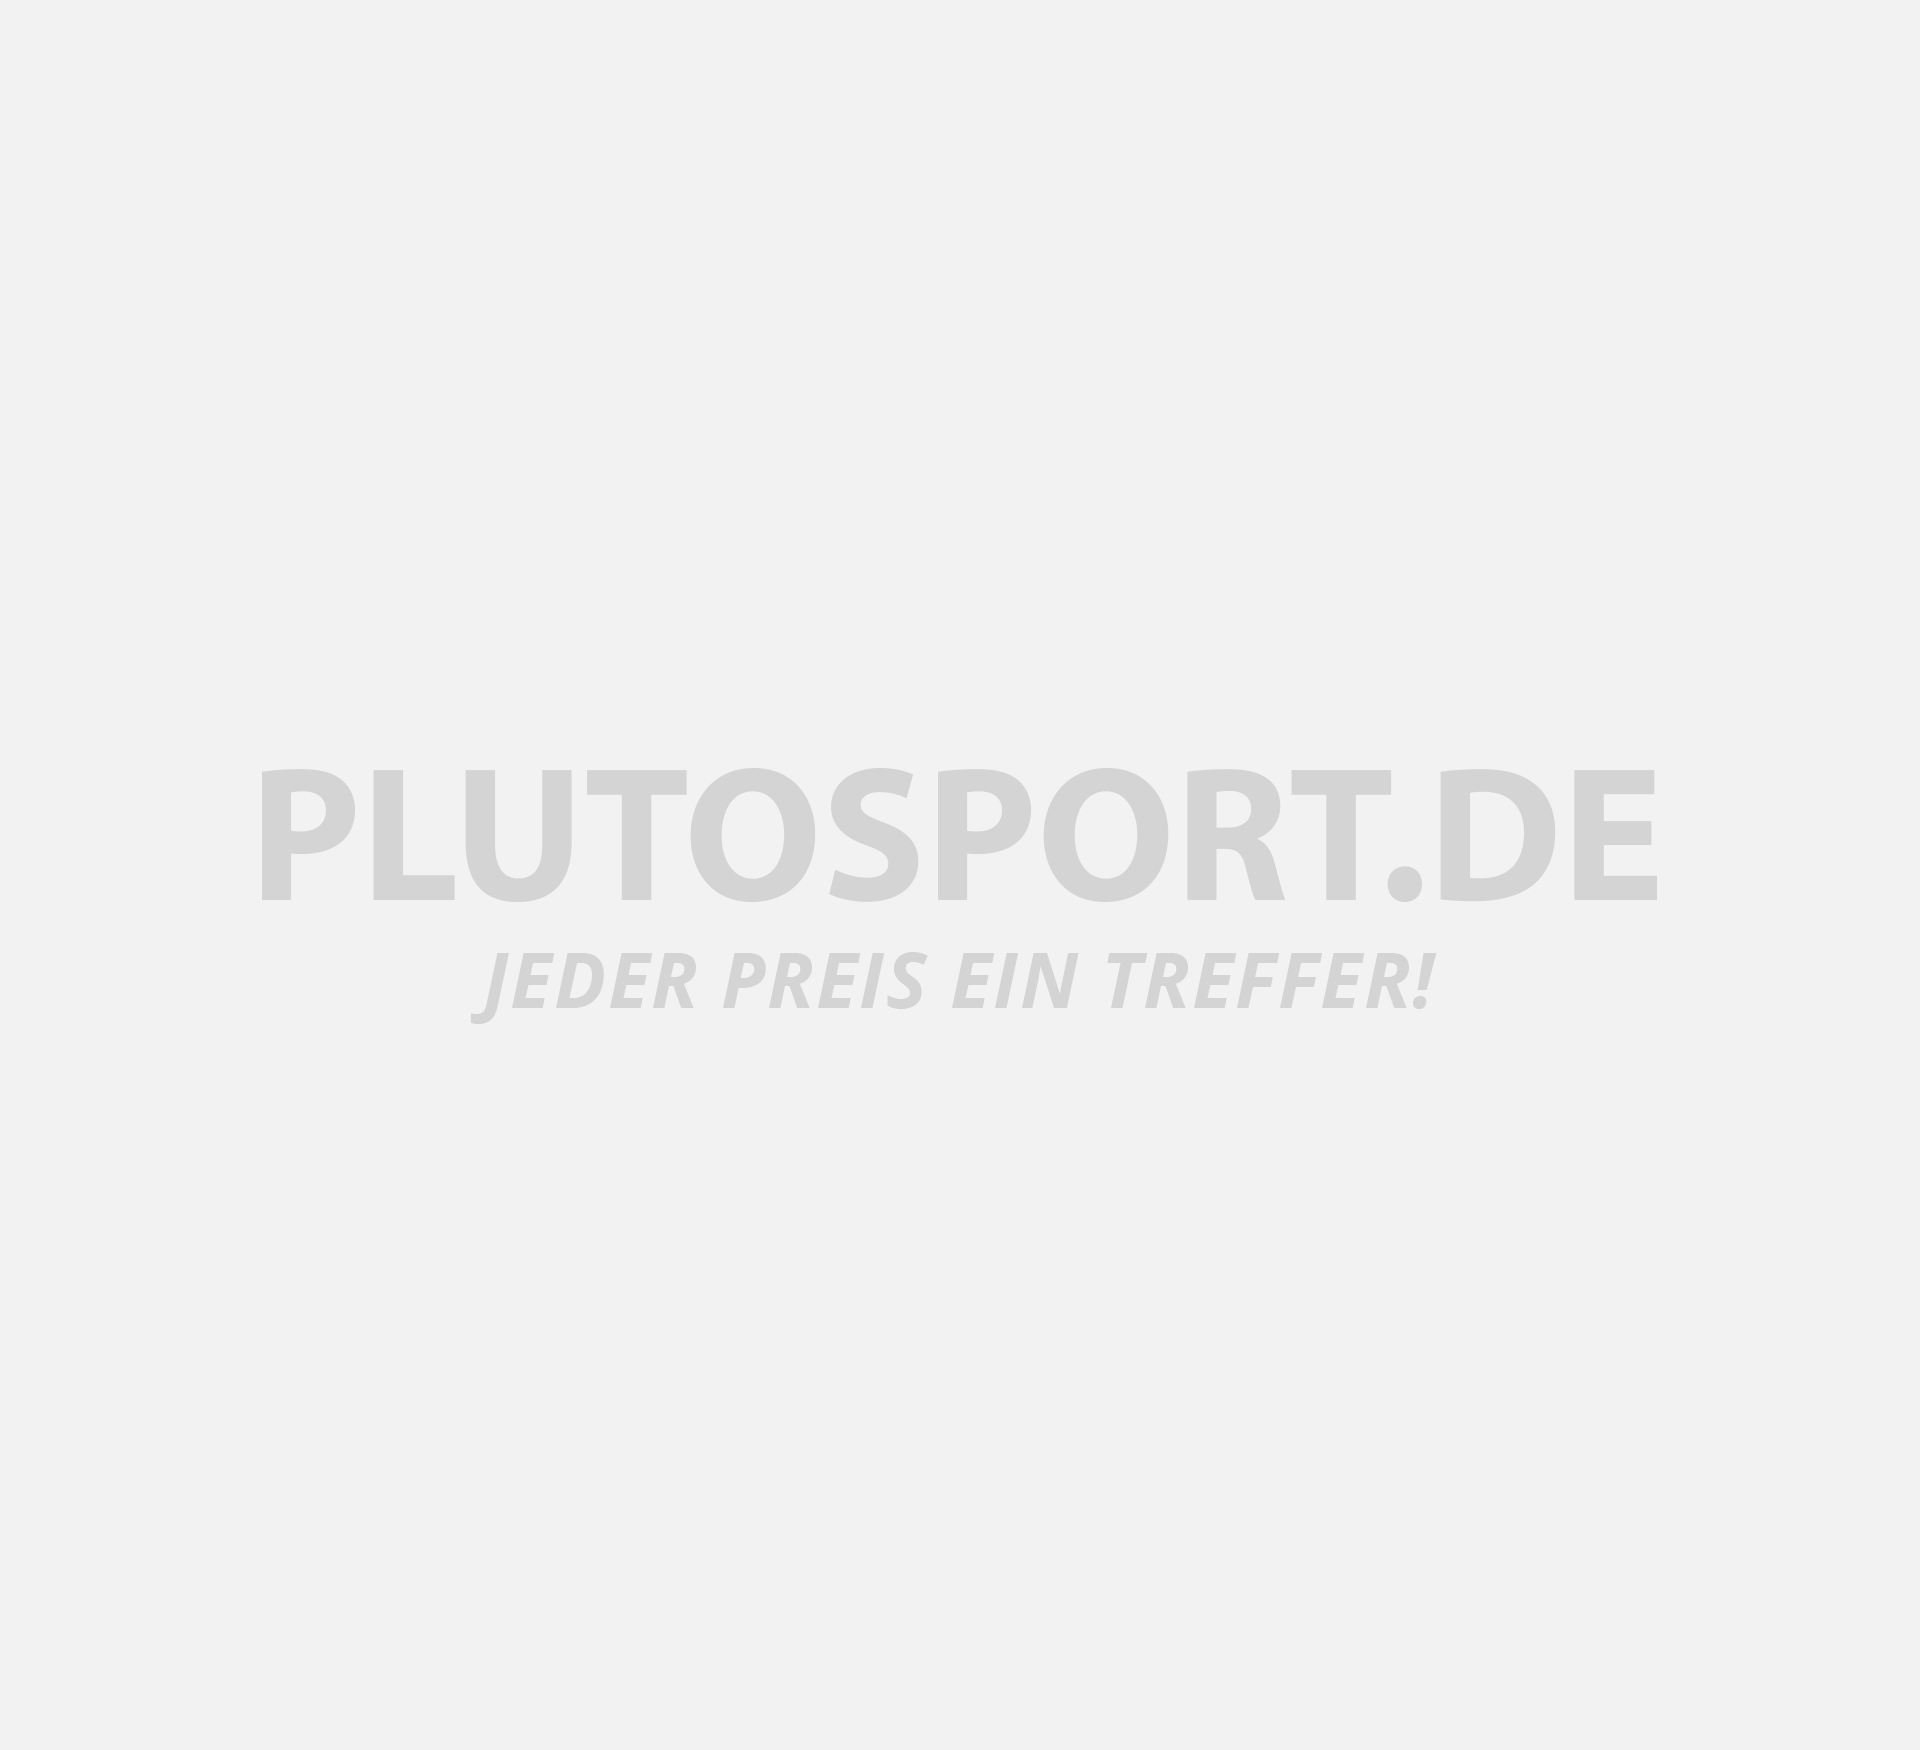 Jack & Jones Intelligence Bali Schwimmshort Herren